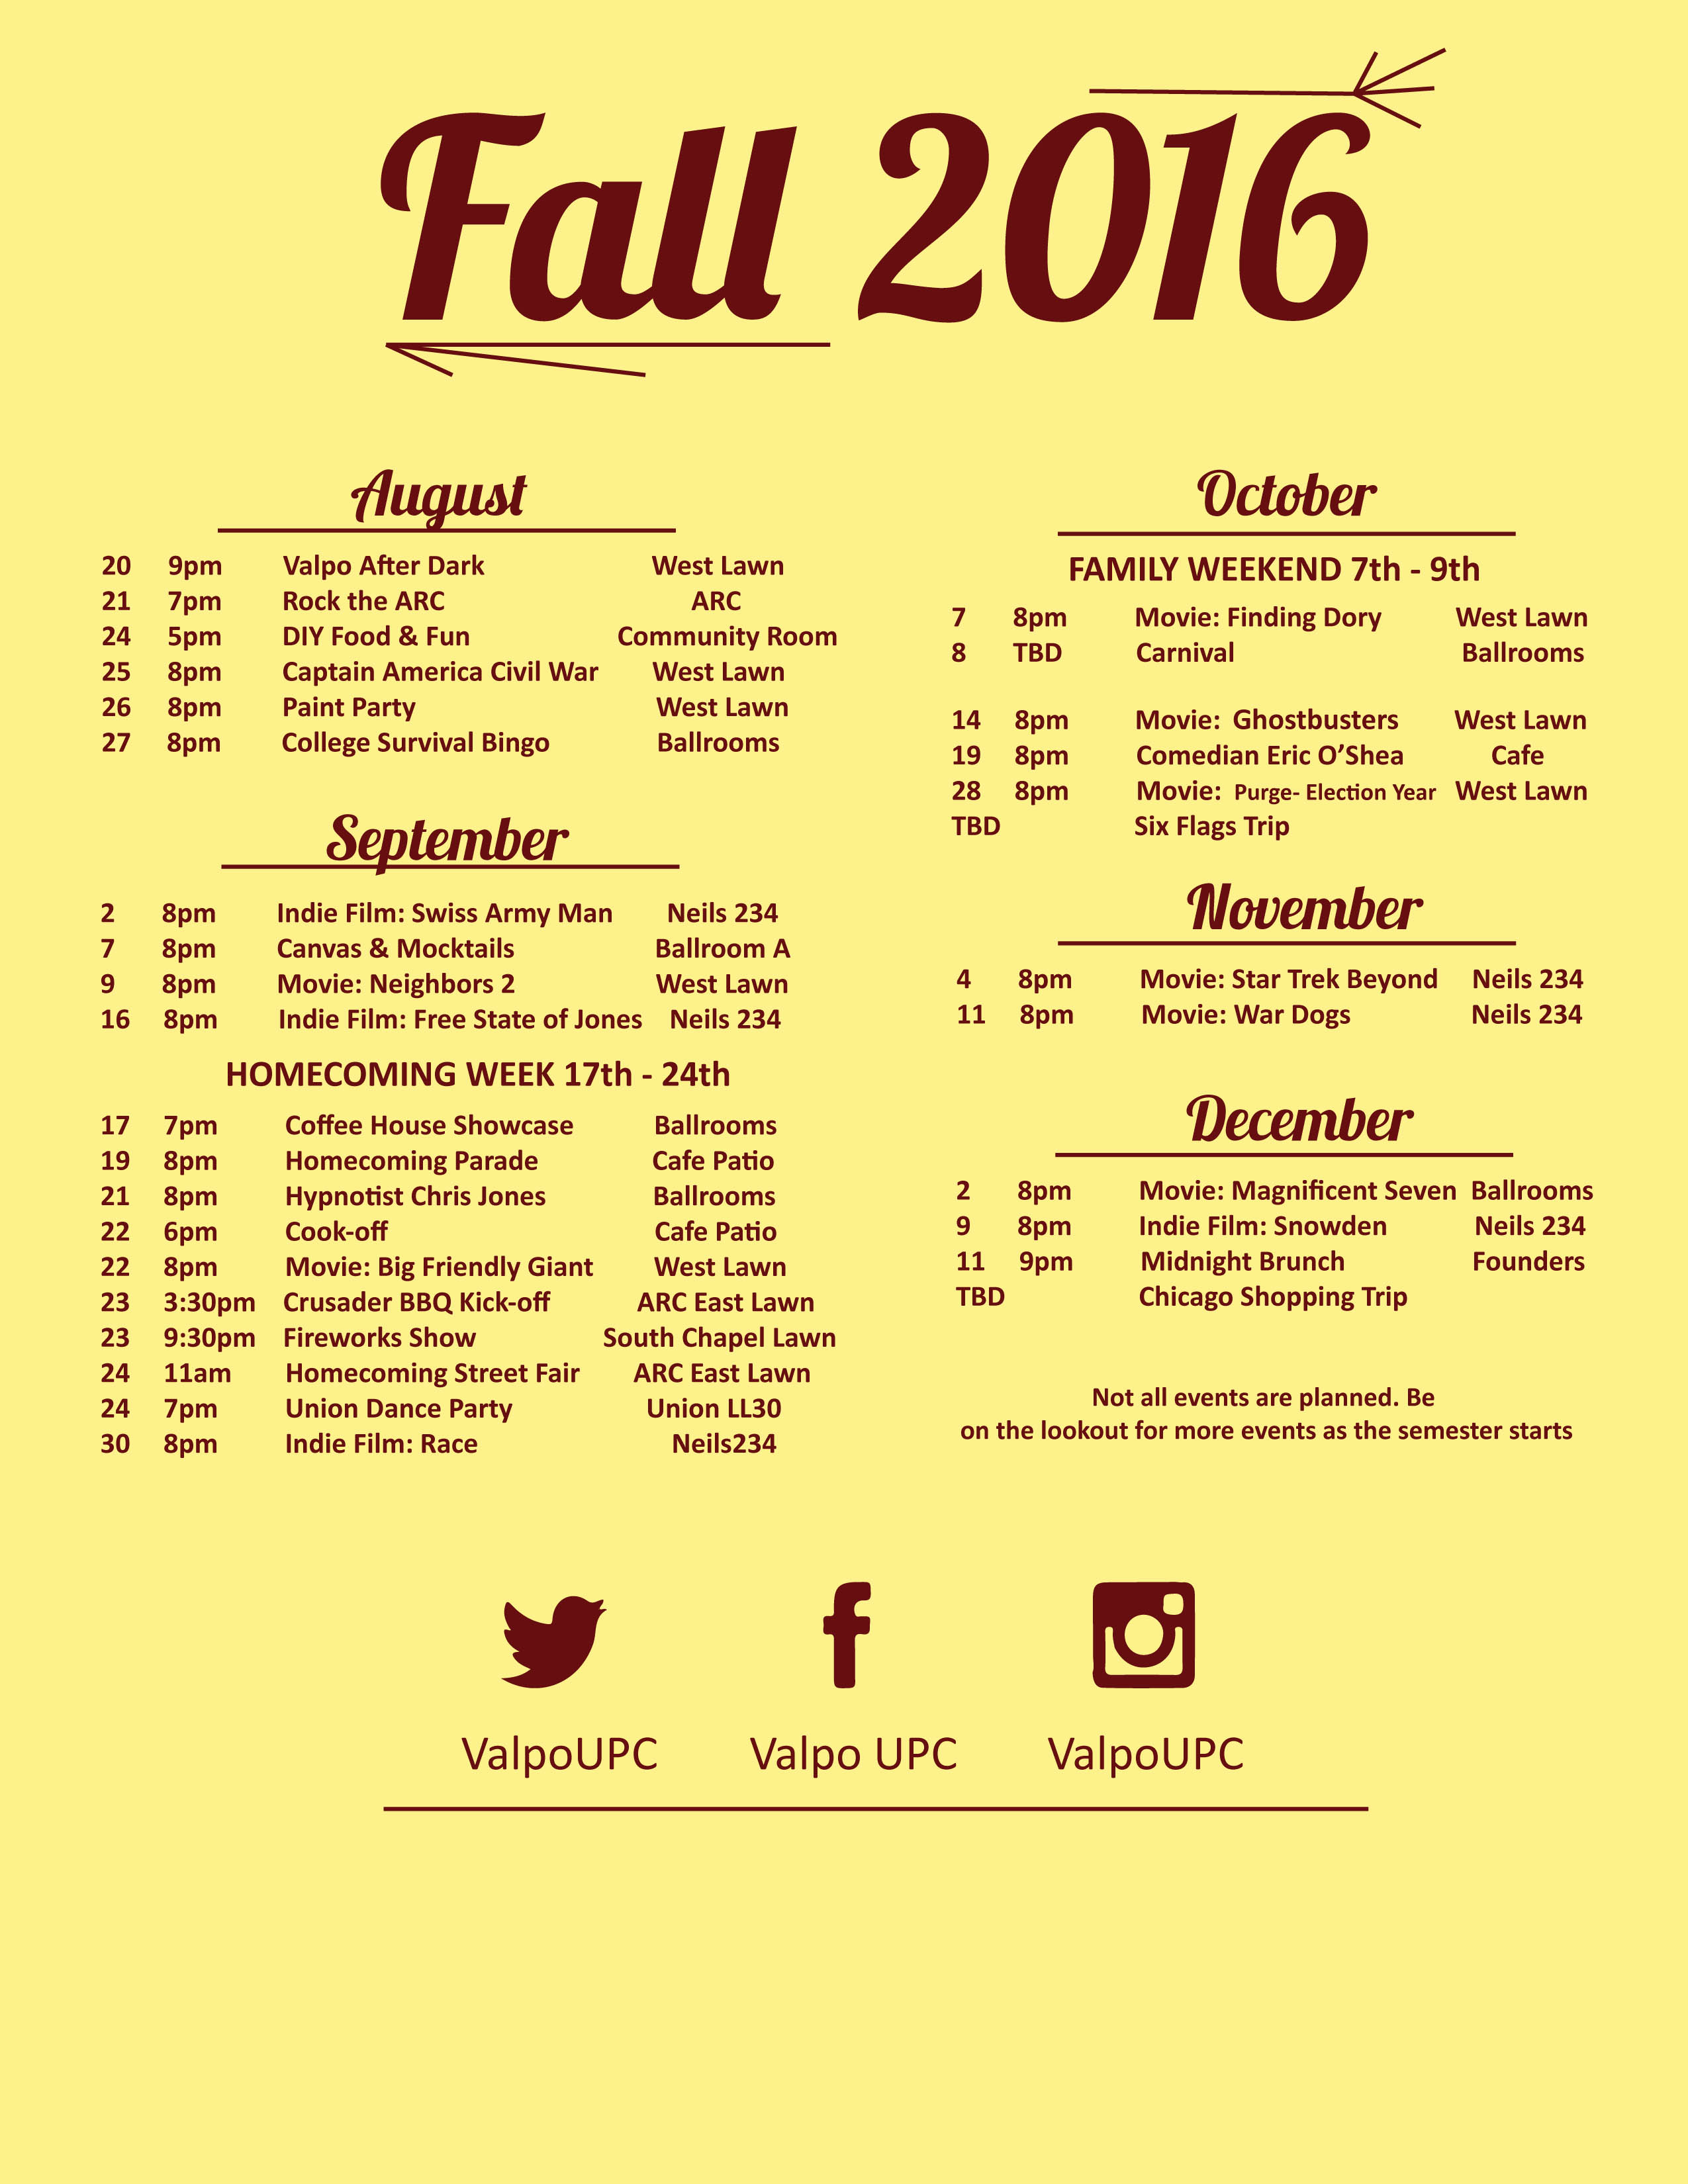 September Date Time Location Rainsite Event 9/2/2016 8pm-10pm Neils 234 Indie Film: Swiss Army Man 9/7/2016 8pm - 10pm Ballroom A Canvas & Mocktails 9/9/2016 8pm-10pm Huegli Lawn Ballroom A&B Movie: Neighbors 2 9/16/2016 8pm-10pm Neils 234 Indie Film: Free State of Jones 9/17/2016 7pm-10pm Ballrooms - Coffee House Showcase 9/17/2016 7pm-10pm Ballrooms - Packet Pick-up 9/18/2016 All Day Cafe Windows Window Painting 9/19/2016 8pm-9pm Cafe Patio Ballrooms Homecoming Parade 9/20/2016 TBD TBD - Service Event 9/21/2016 8pm-9pm Ballrooms - Hypnotist Chris Jones 9/22/2016 6pm-7pm Cafe Patio Ballrooms Cookoff 9/22/2016 8pm-10pm Huegli Lawn Ballrooms Movie: Big Friendly Giant 9/23/2016 3:30pm-5:30pm ARC East Lawn - Crusader BBQ Kick-Off 9/23/2016 9:30 PM South Chapel Lounge - Homecoming Fireworks Show 9/24/2016 11am-1pm ARC East Lawn - Homecoming Street Fair 9/24/2016 7pm-10pm LL30 - Shake the Union Dance Party 9/30/2016 8pm-10pm Neils 234 Indie Film: Race October Date Time Location Rainsite Event 10/7/2016 8pm-10pm Huegli Lawn Ballrooms Movie: Finding Dory 10/8/2016 TBD Ballrooms - Carnival 10/14/2016 8pm-10pm Huegli Lawn Neils 234 Movie: Ghostbusters 10/26/2016 8pm-9pm Campus Cafe - Comedian Eric O'Shea 10/28/2016 8pm-10pm Huegli Lawn Neils 234 Movie: The Purge - Election Year TBD TBD Six Flags - Six Flags Trip November Date Time Location Rainsite Event 11/4/2016 8pm-10pm Neils 234 - Movie: Star Trek Beyond 11/9/2016 7pm-TBD TBD - Cooking Class 11/11/2016 8pm-10pm Neils 234 - Movie: War Dogs December Date Time Location Rainsite Event 12/2/2016 8pm-10pm Ballroom A&B - Movie: Magnificent Seven 12/9/2016 8pm - 10pm Neils 234 Indie Film: Snowden 12/11/2016 9pm-11pm Founders - Midnight Brunch TBD TBD Chicago - Chicago Shopping Trip